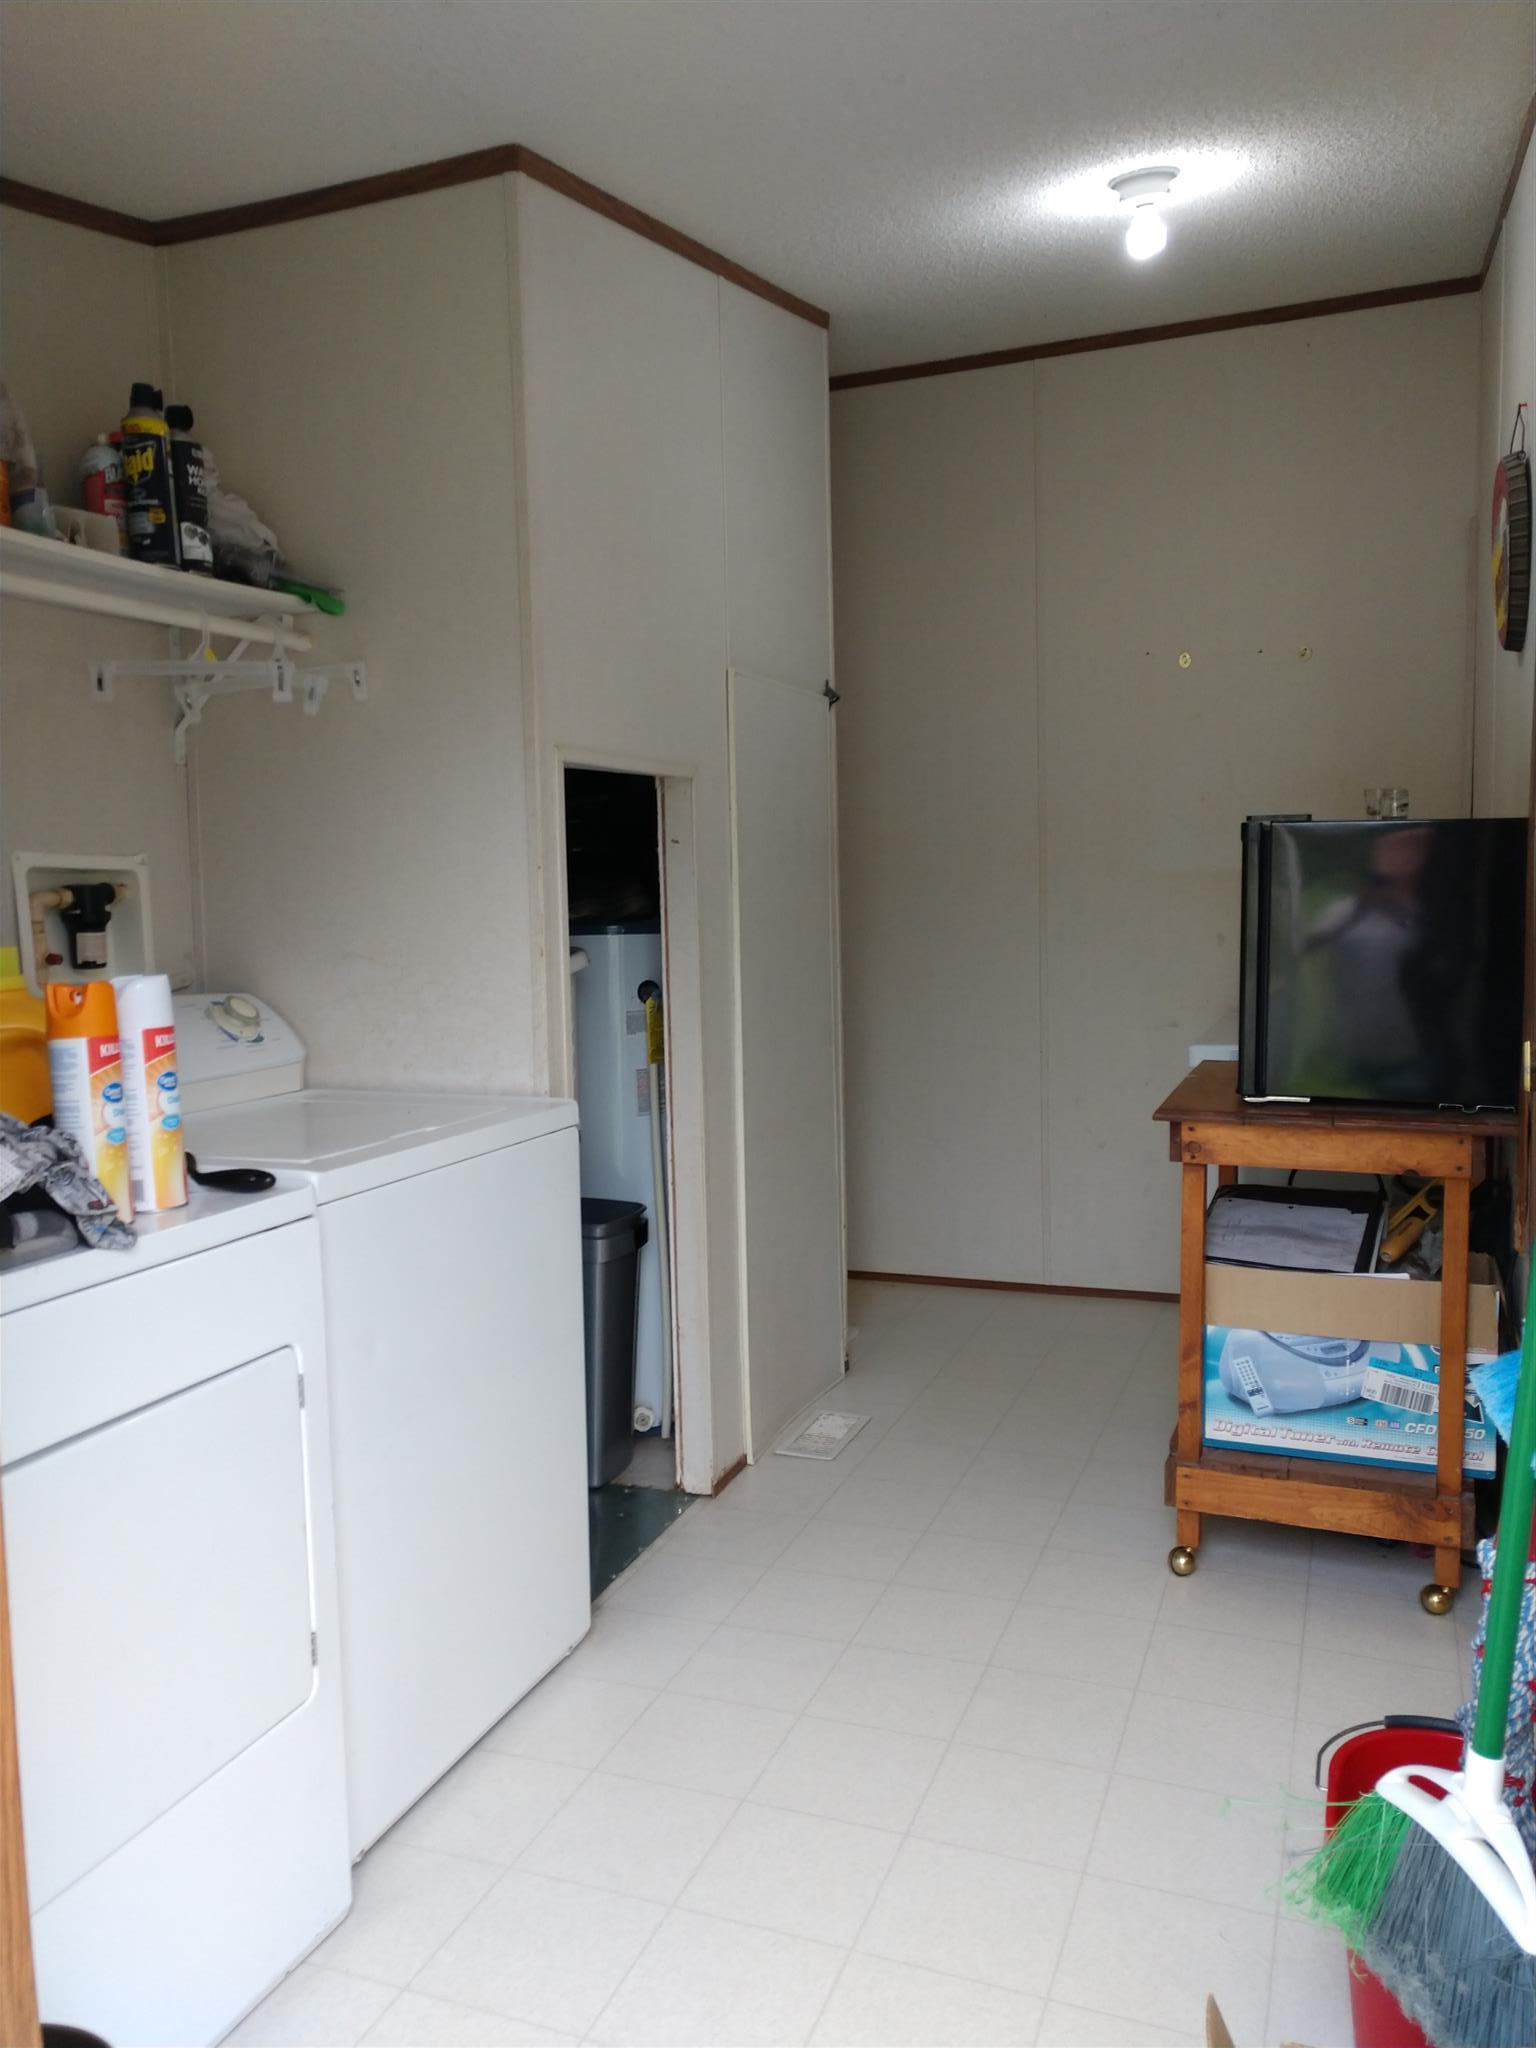 197 Switchboard Rd - photo 29